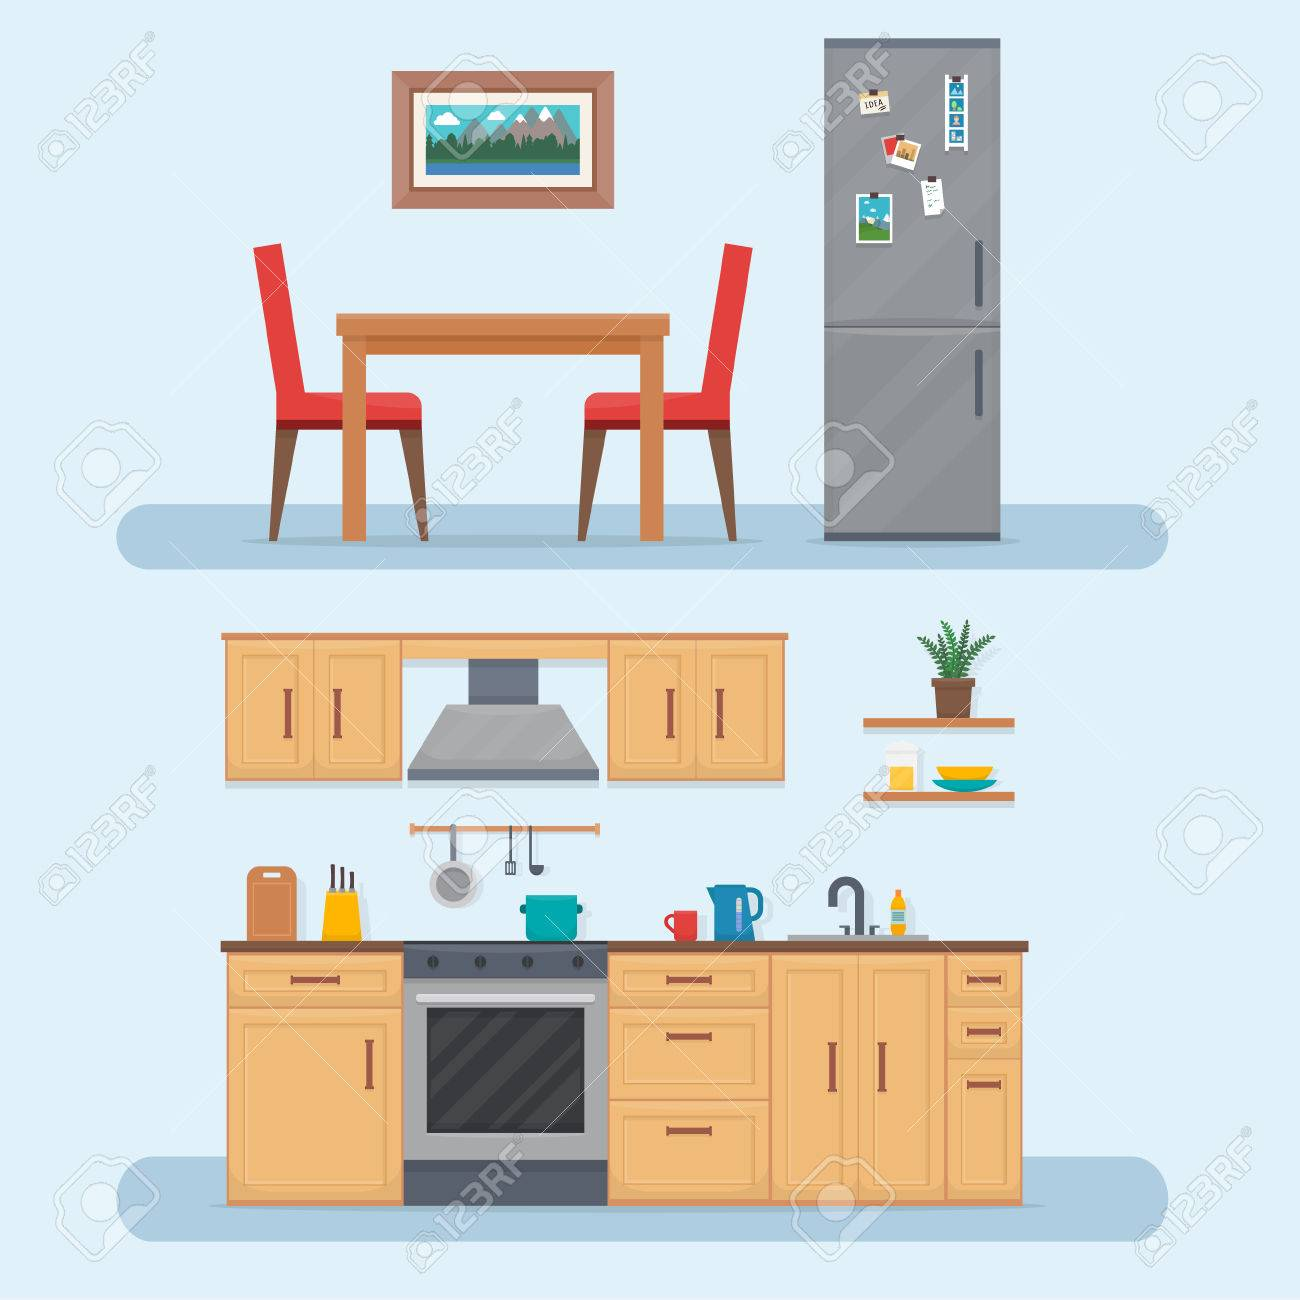 Kitchen with furniture set. Cozy kitchen interior with table, cupboard and dishes. Flat style vector illustration. - 59359678